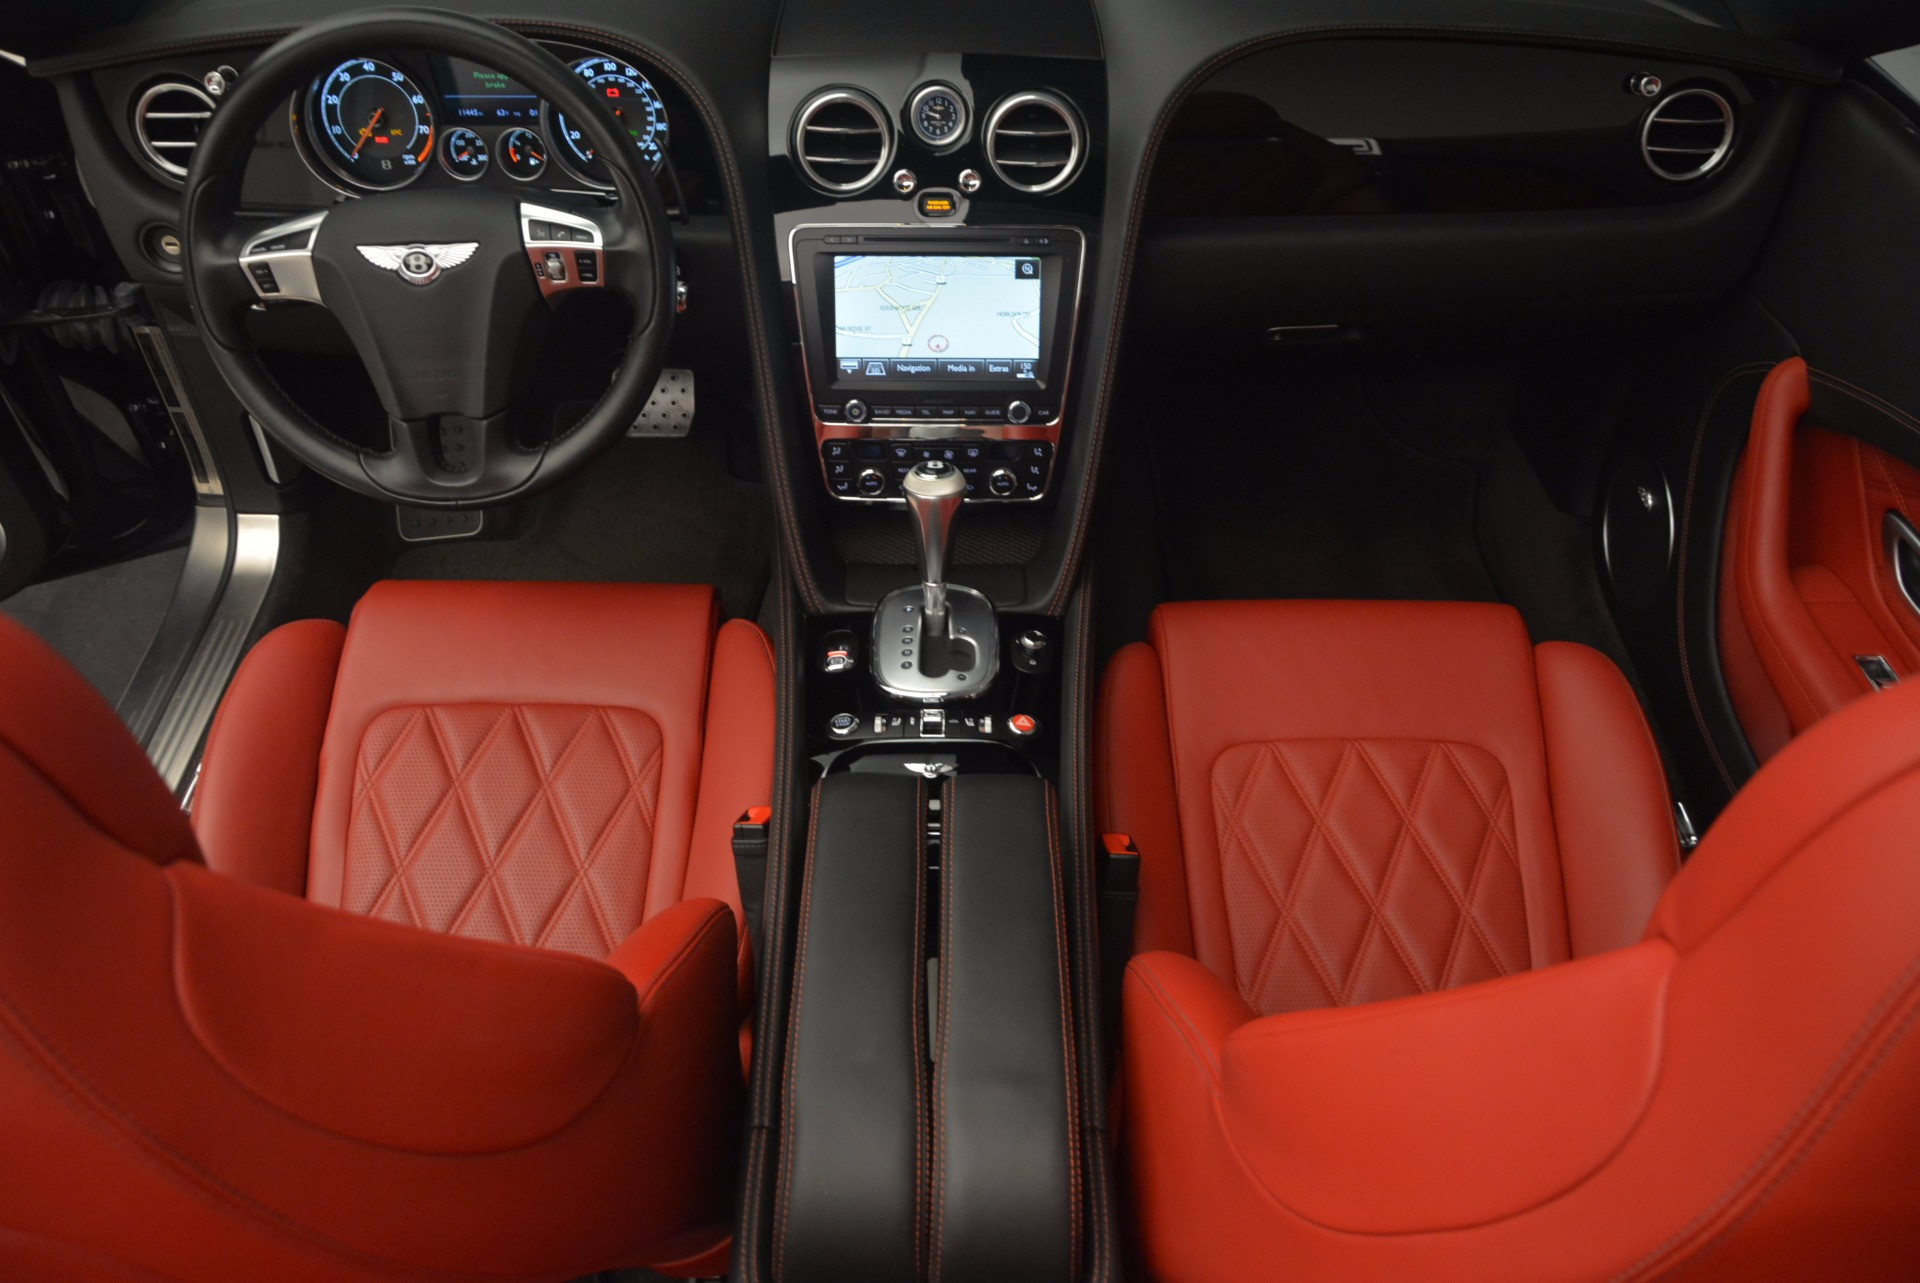 Used 2012 Bentley Continental GT W12 Convertible For Sale In Greenwich, CT 1104_p42